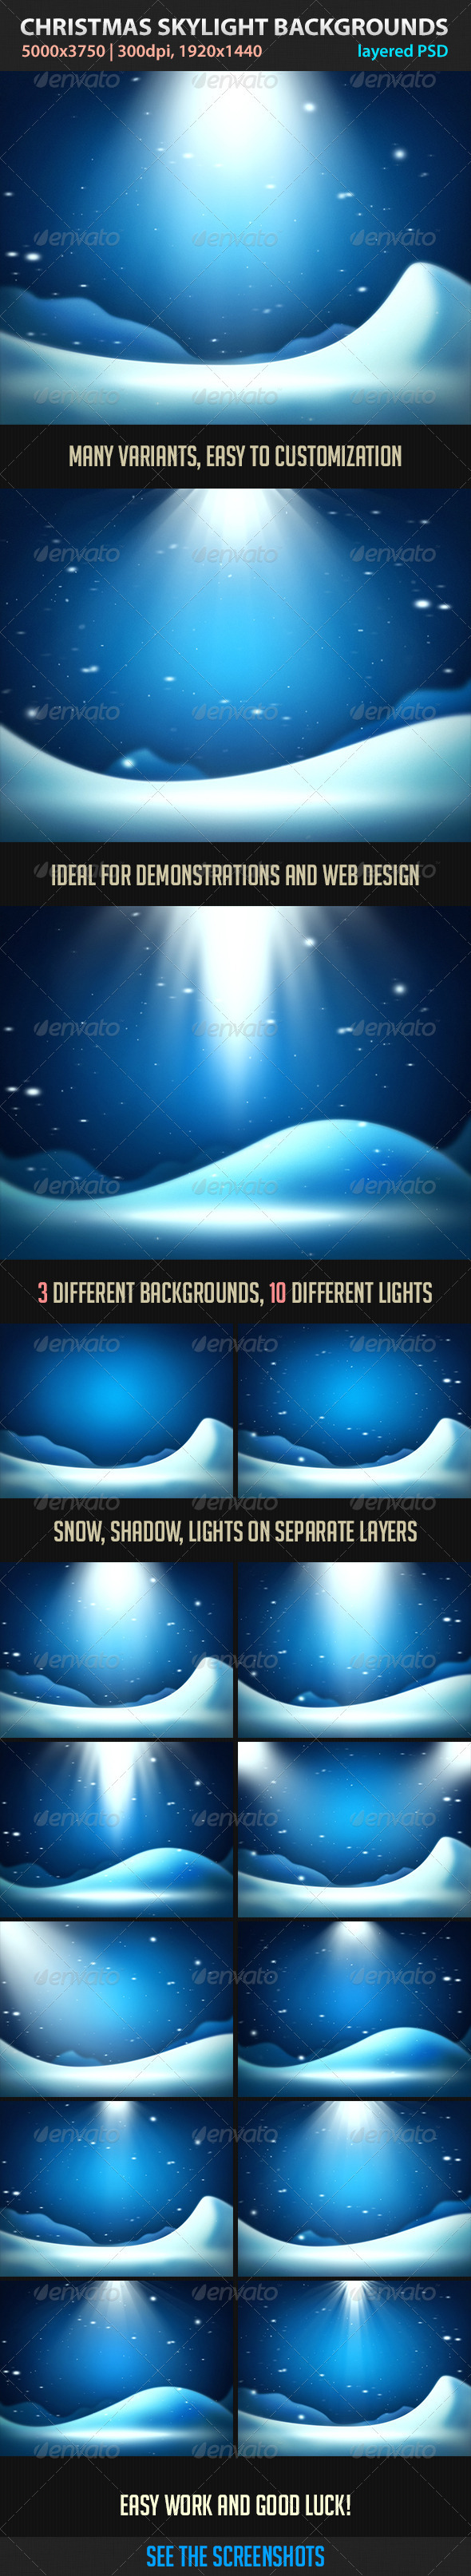 GraphicRiver Christmas Skylight Backgrounds 3419242